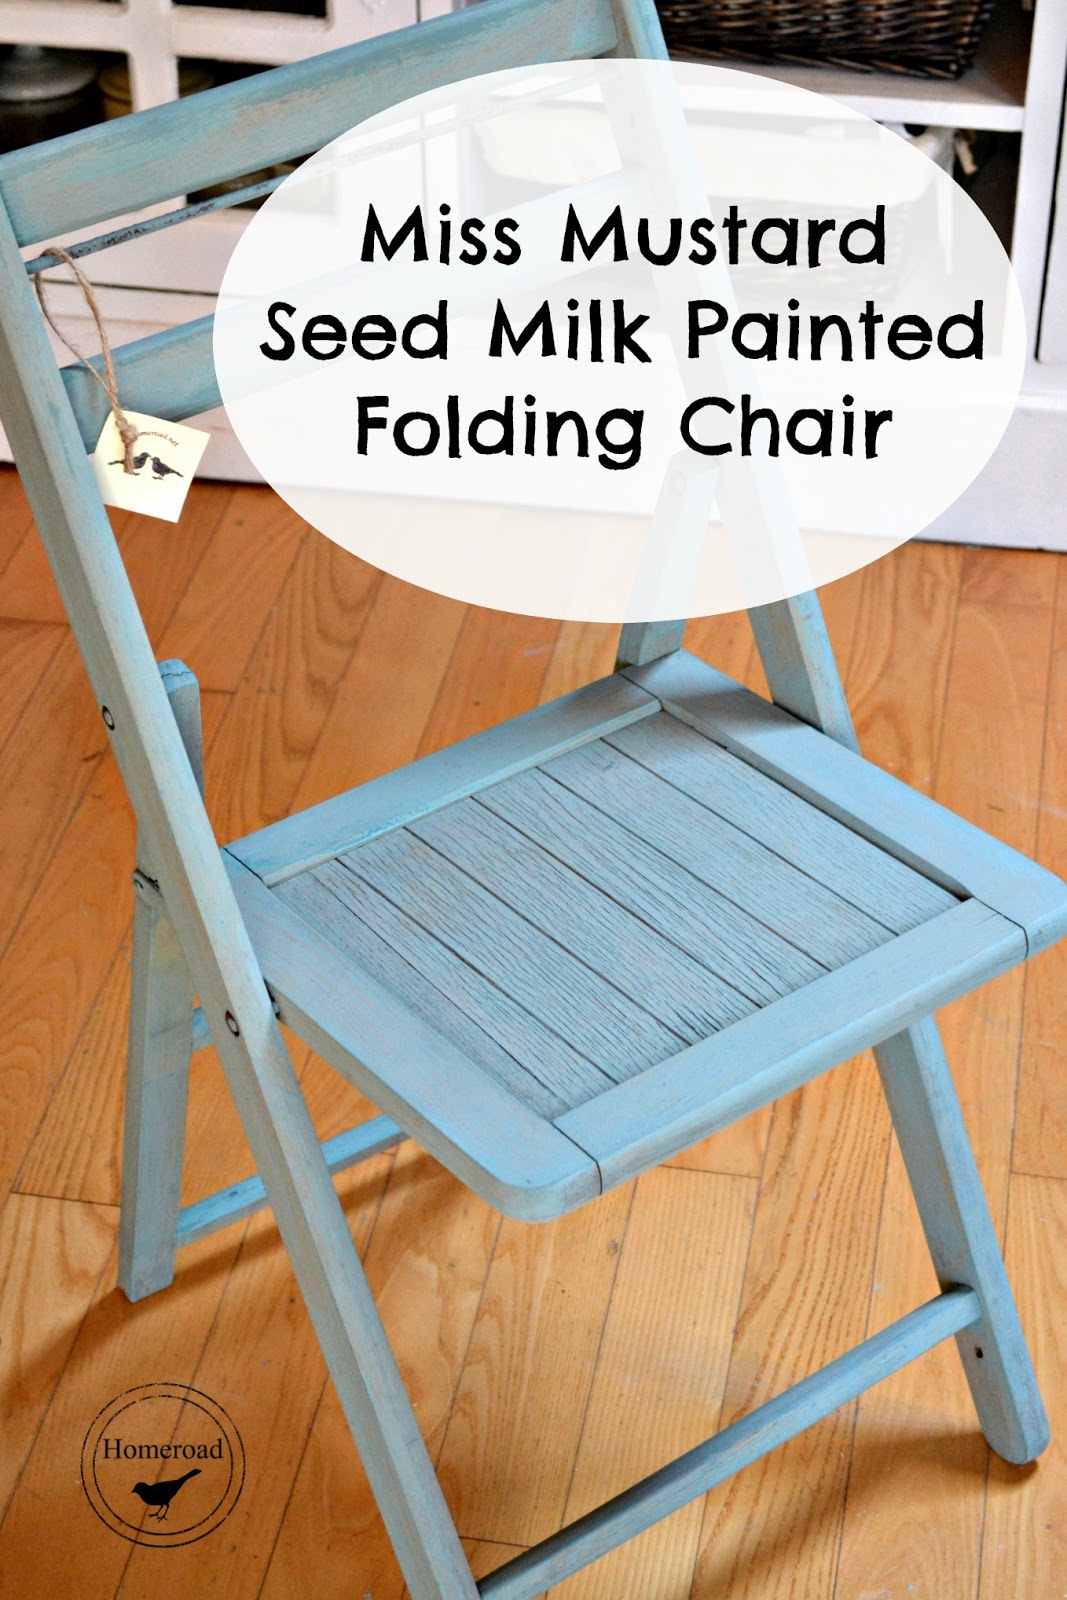 folding chairs wooden lounge chair outside miss mustard seed milk painted